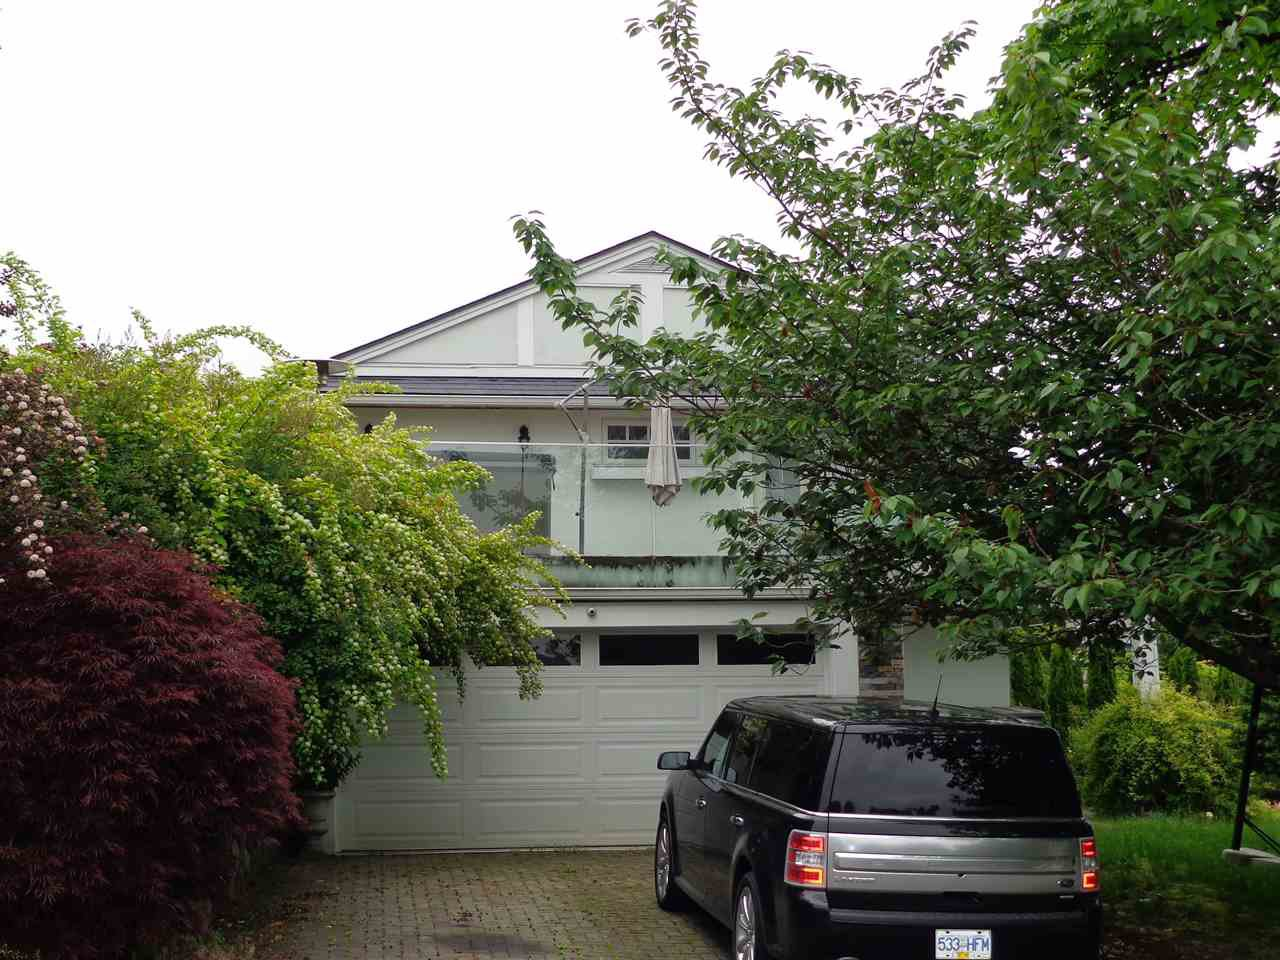 Photo 17: Photos: 4210 GLENHAVEN CRESCENT in North Vancouver: Dollarton House for sale : MLS®# R2373969